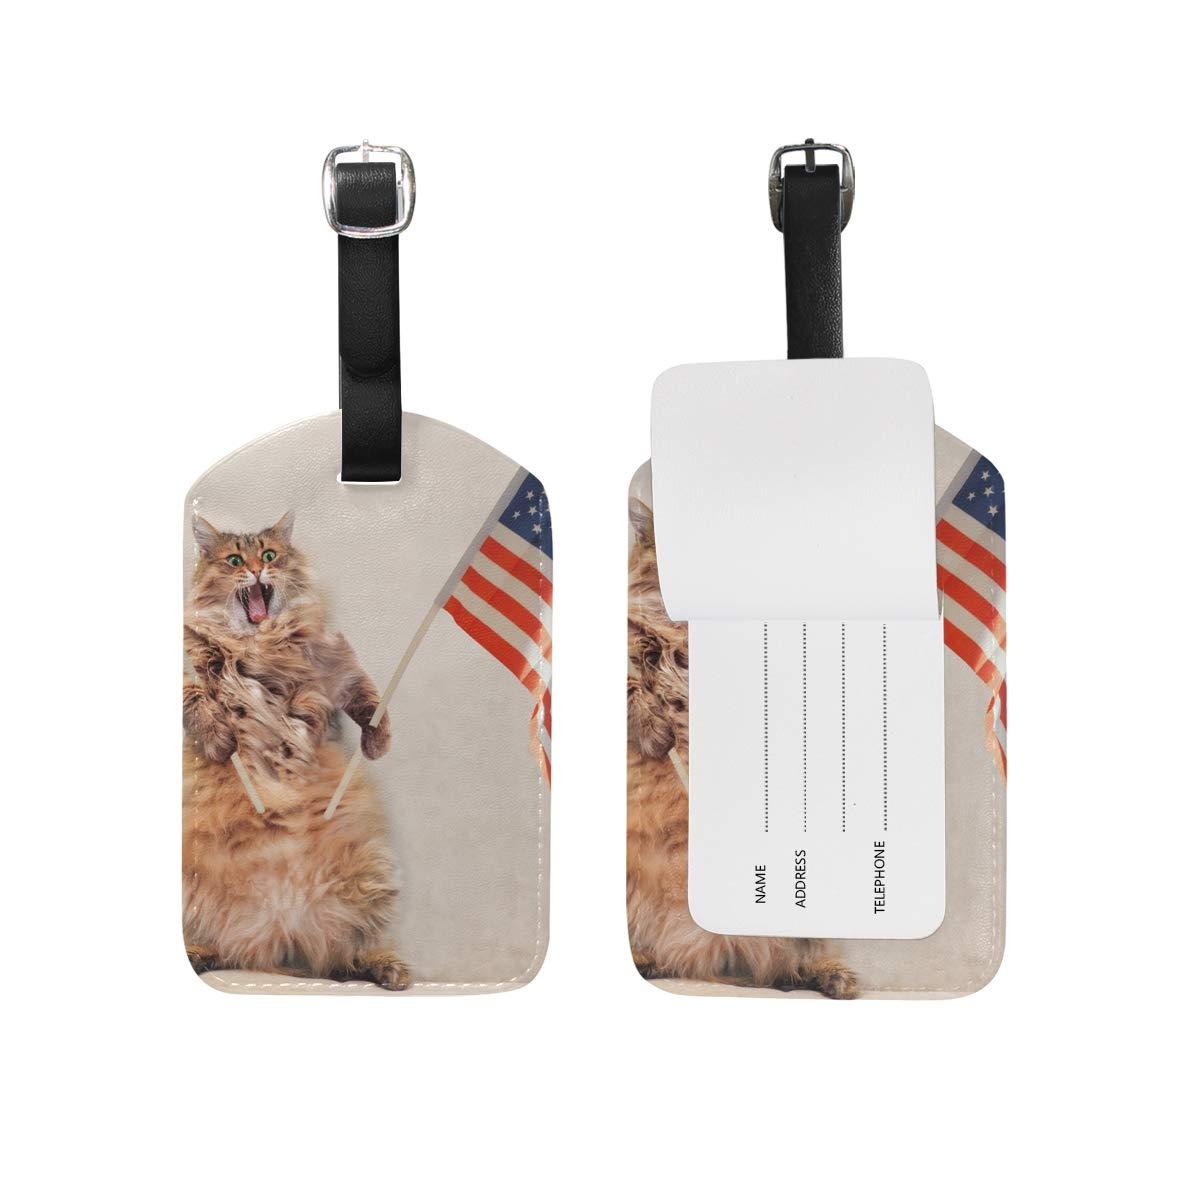 1Pcs Travel Luggage Tag Big Shaggy Cat PU Leather Baggage Suitcase Travel ID Bag Tag